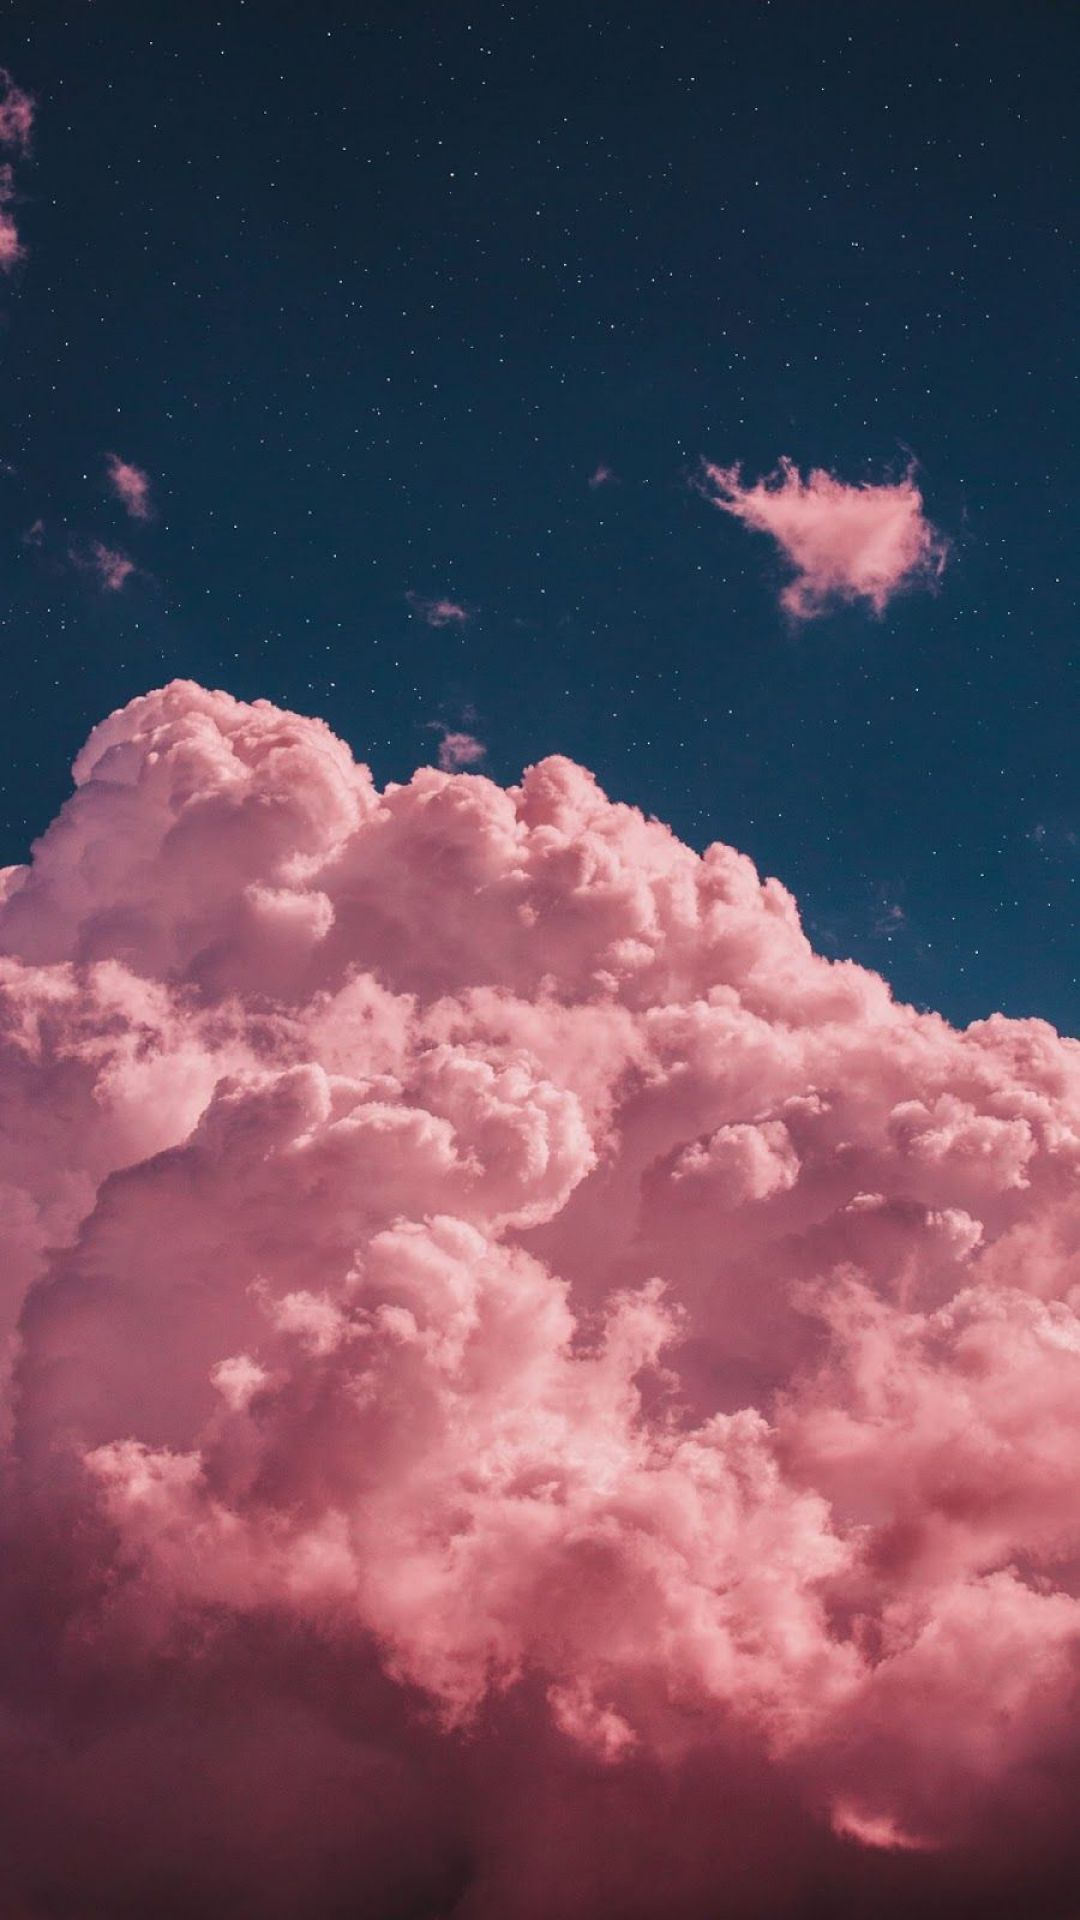 Clouds Aesthetic Android Iphone Desktop Hd Backgrounds Wallpapers 1080p 4k 102814 Hd Clouds Wallpaper Iphone Pink Clouds Wallpaper Cloud Wallpaper